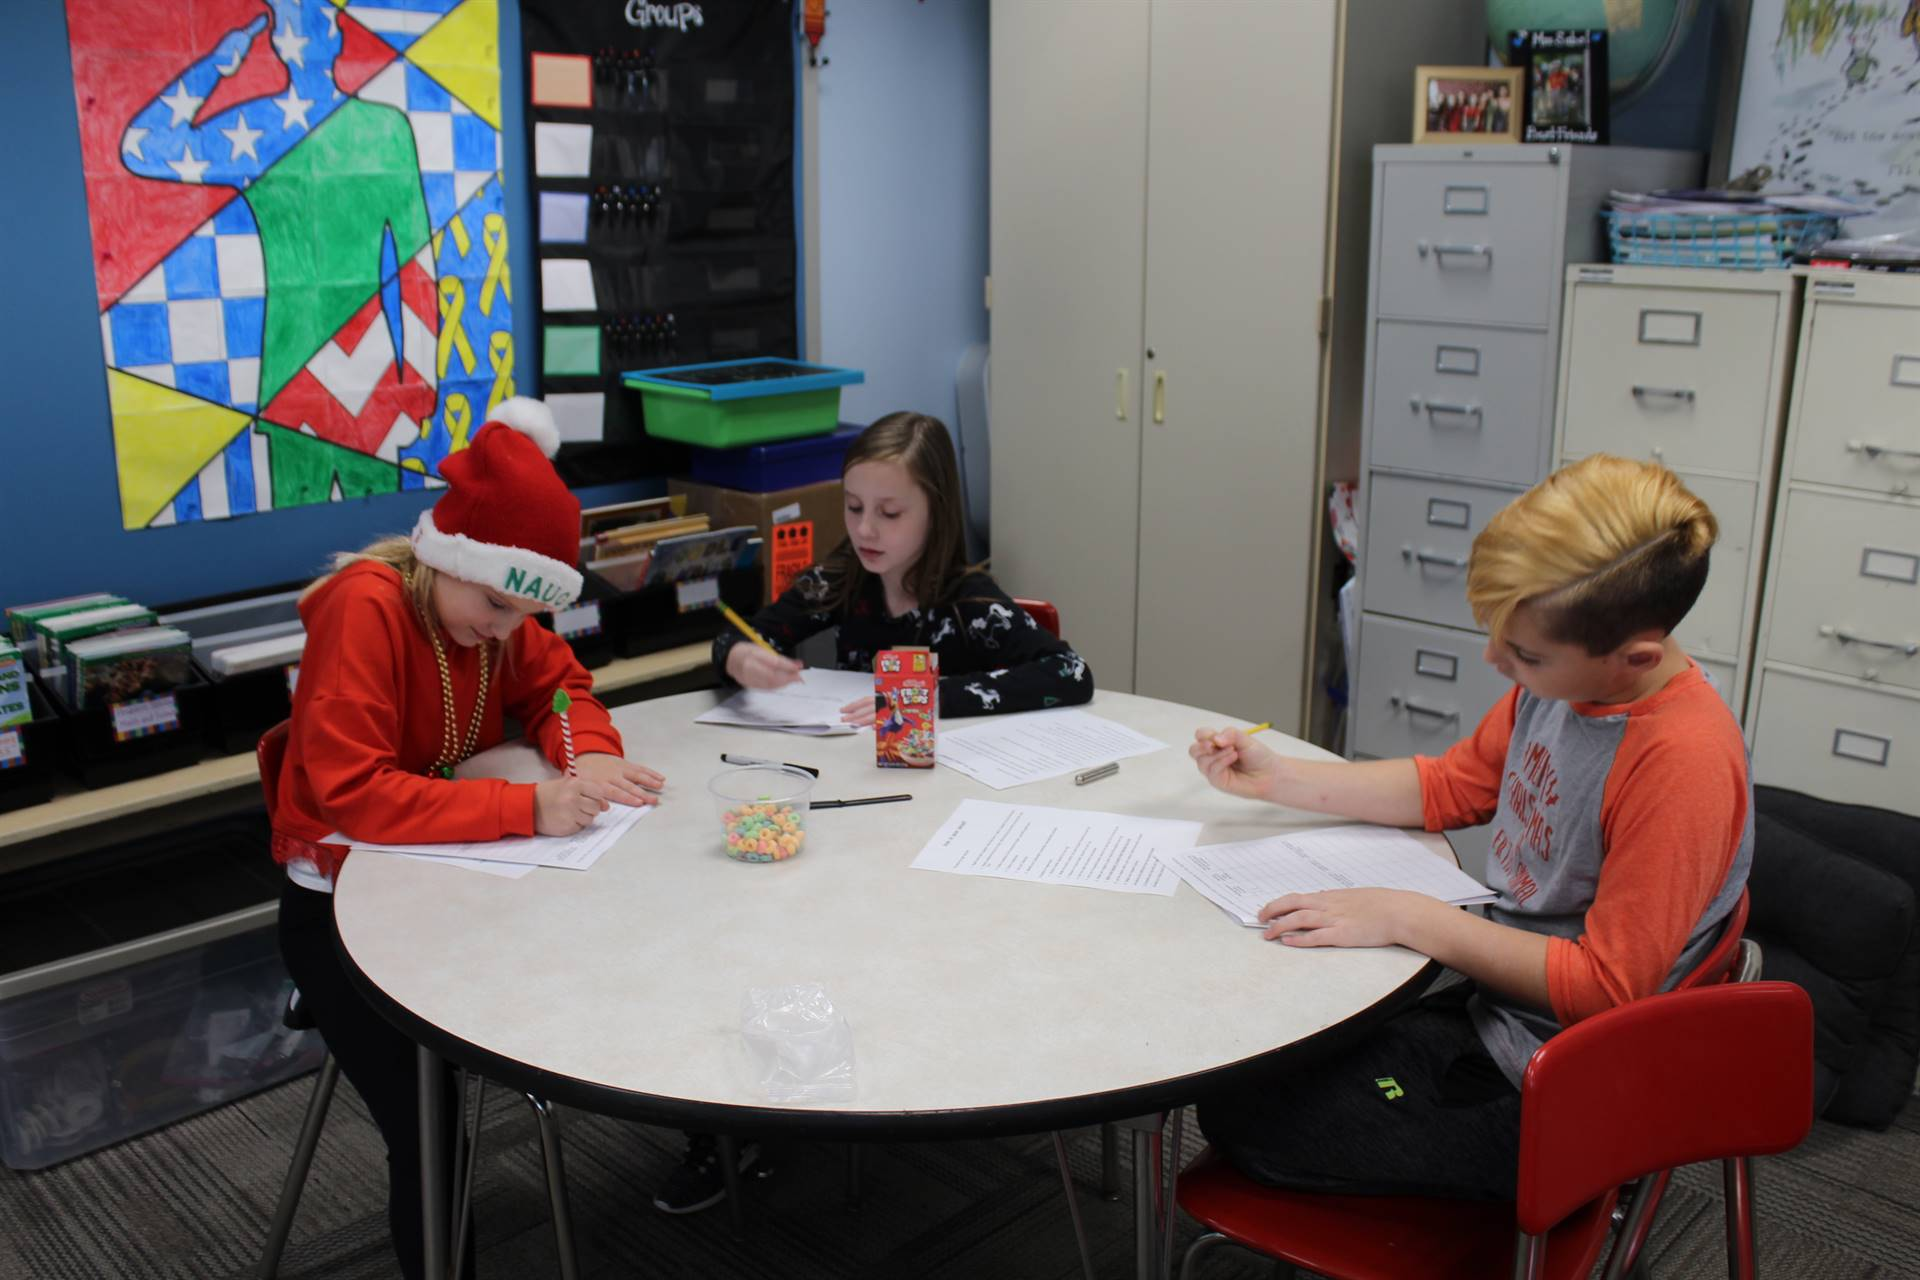 Three students writing their observations on worksheets